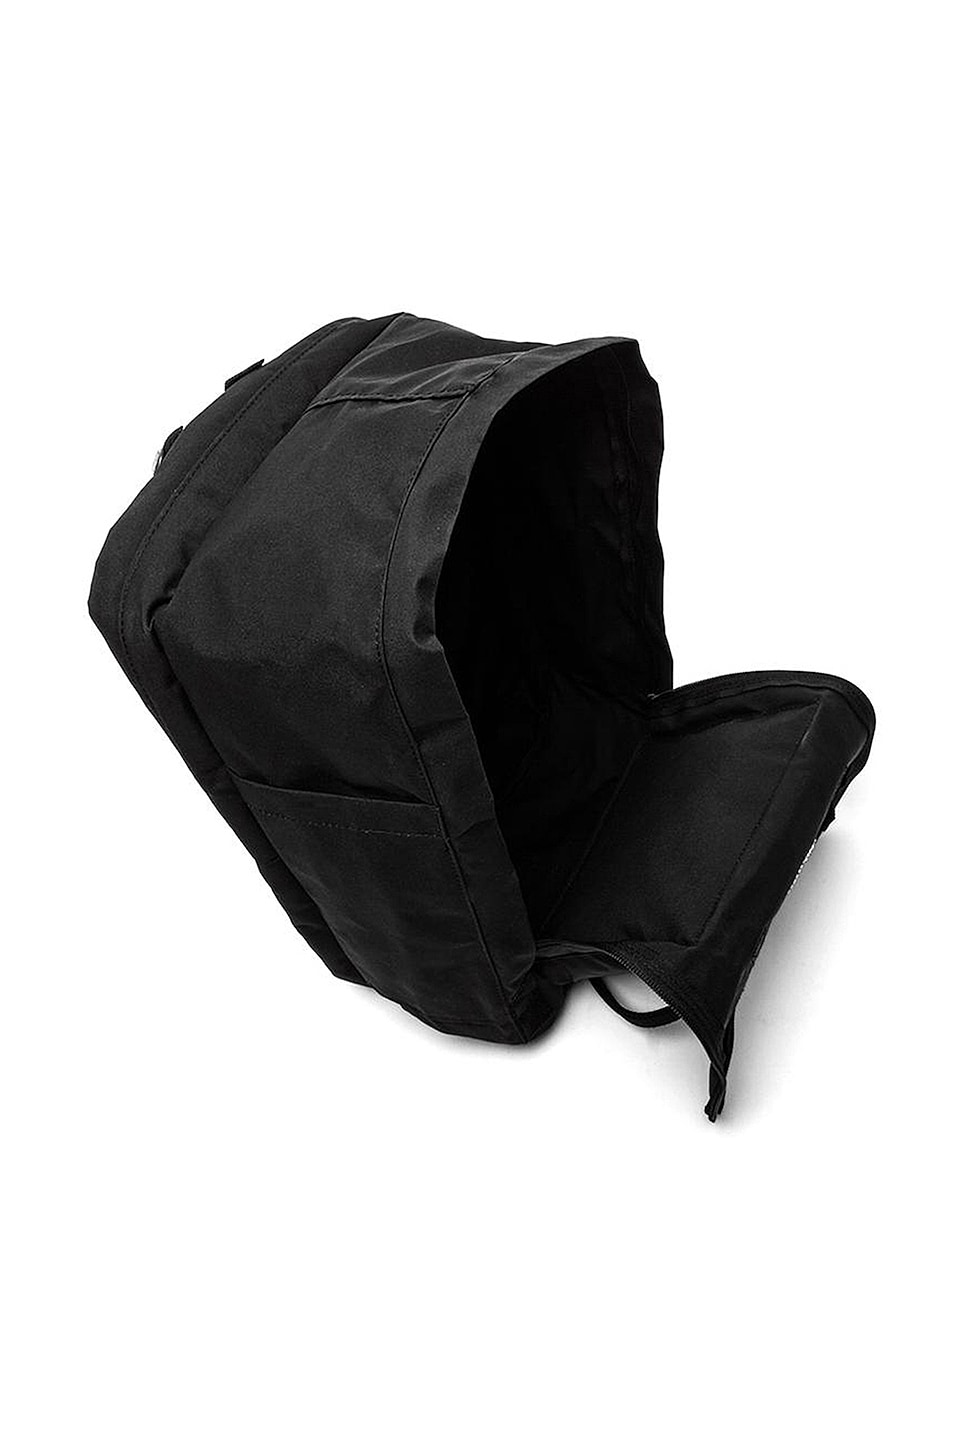 "Fjallraven Kanken 15"" Laptop Pack in Black"